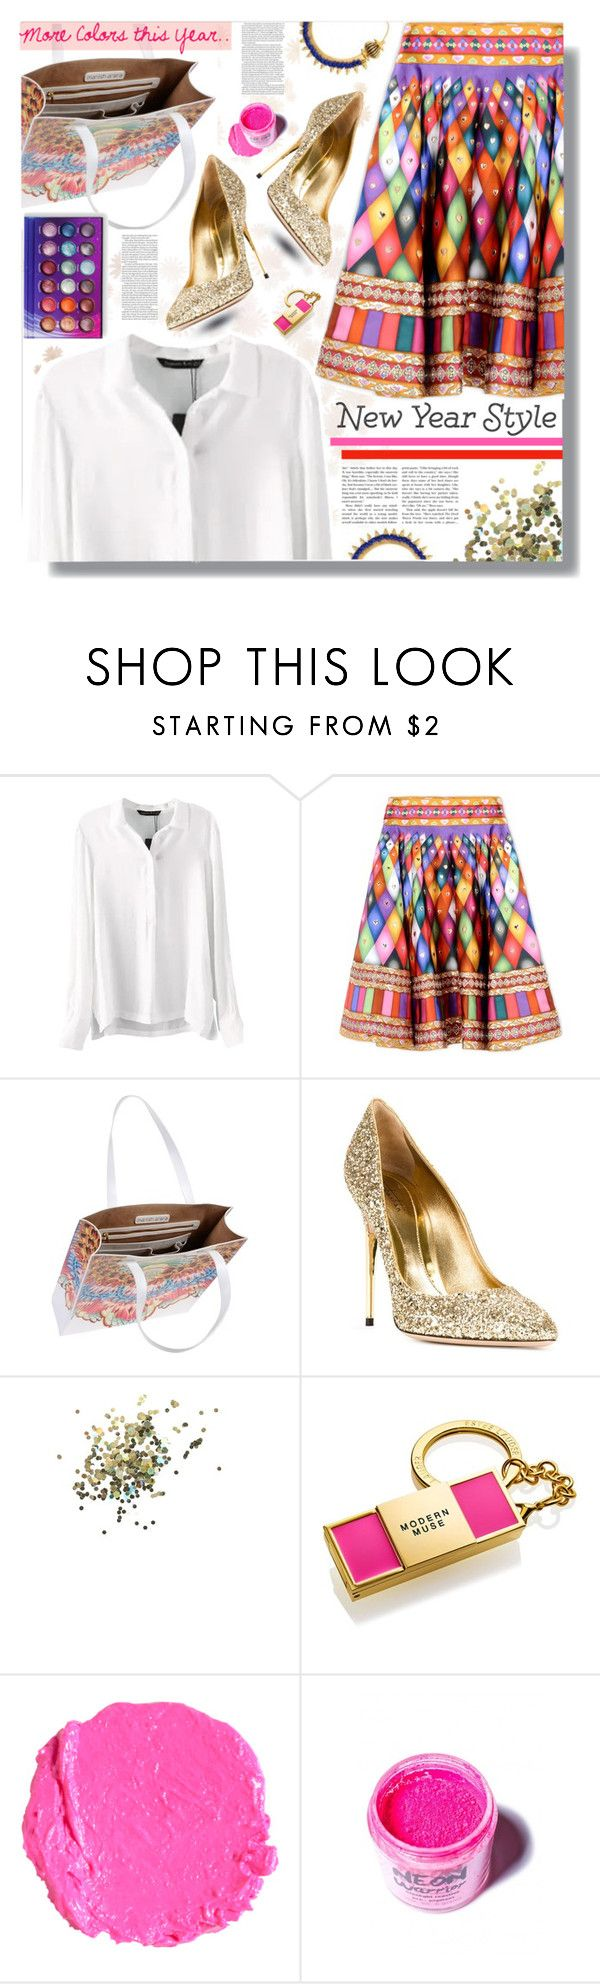 """New Year's Style Resolution"" by prigaut ❤ liked on Polyvore featuring Manish Arora, ASOS, Sebastian Milano, Topshop, Estée Lauder, Medusa's Makeup, newyear, MoreColors and MakeLifeColorful"